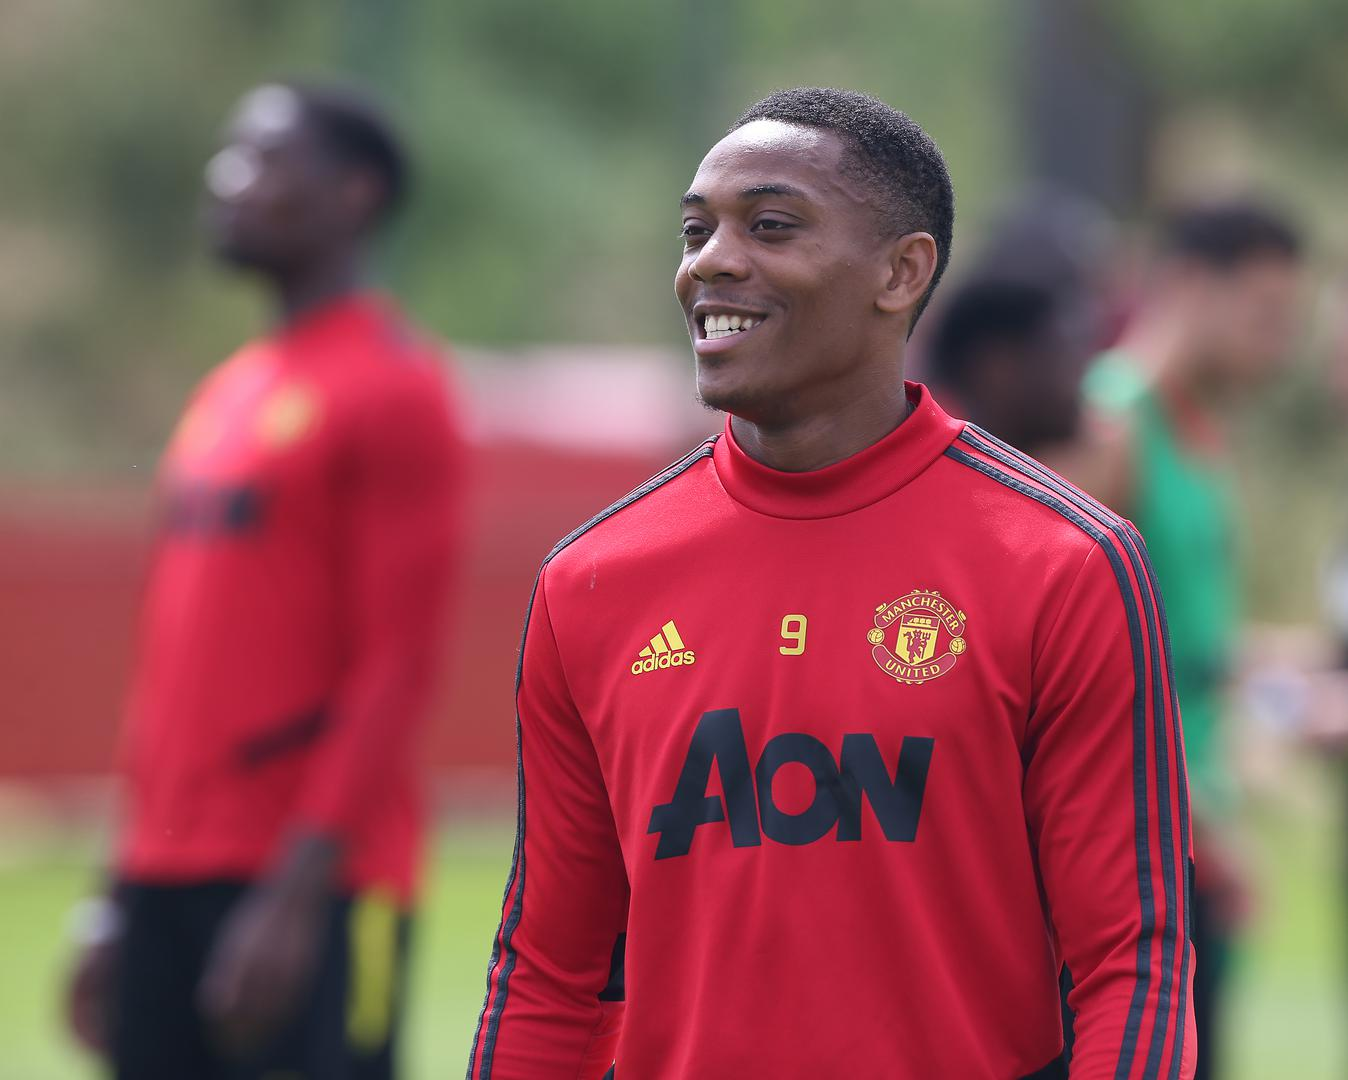 Anthony Martial in a training session